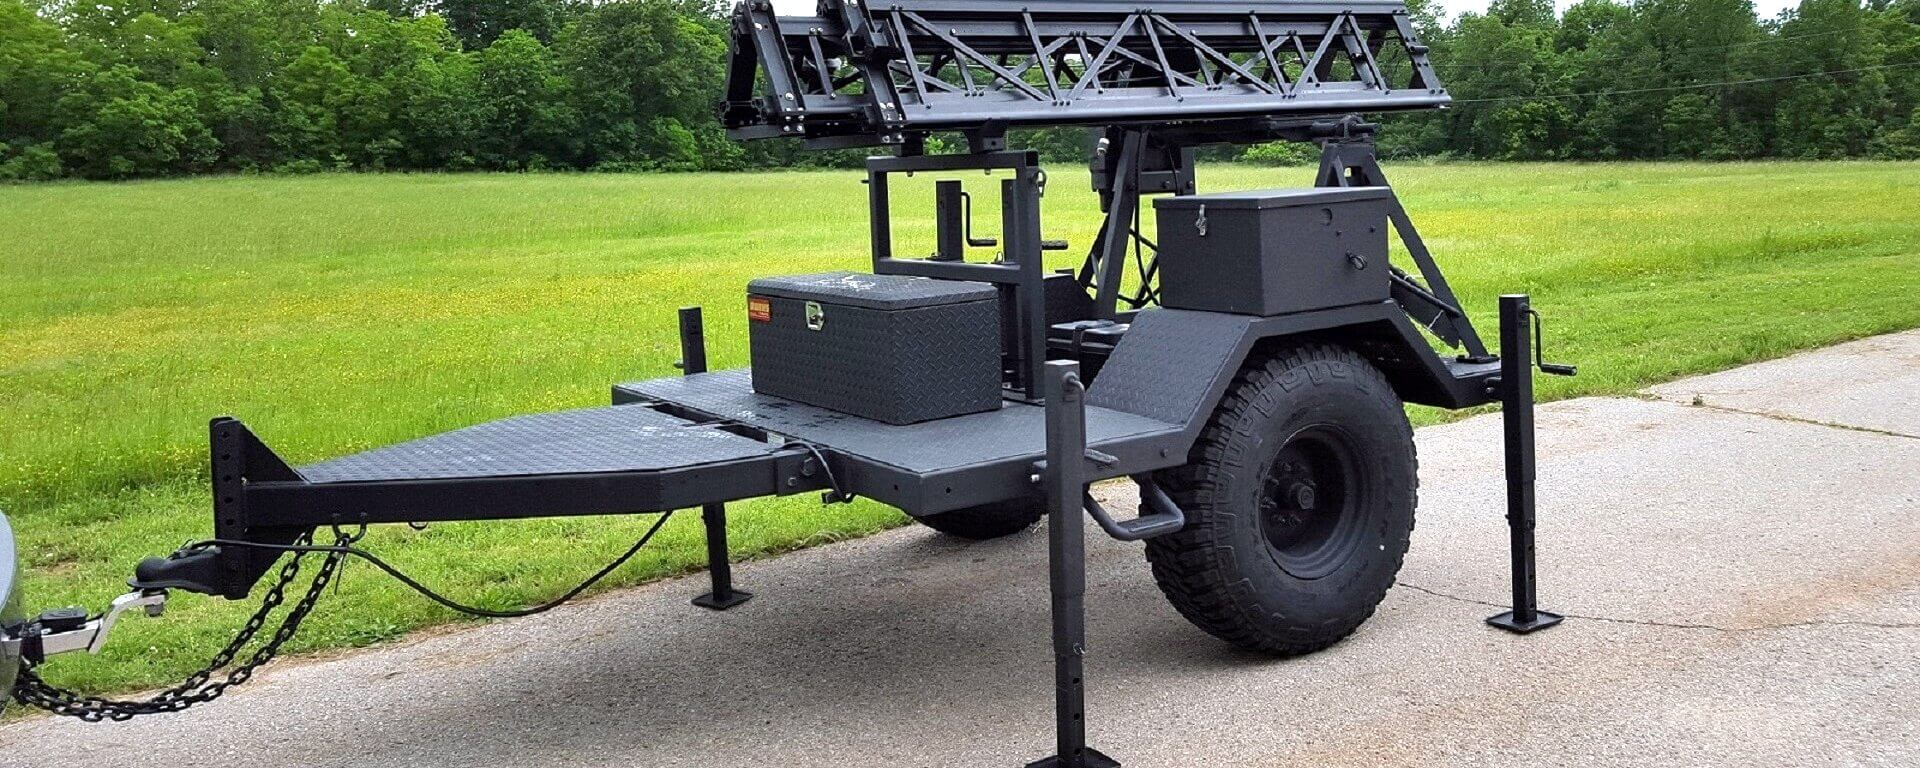 1920×768-AllTech-Communications-Cell-on-Wheels-Telescopic-Tower-Trailer-amp-Telecom-Shelter-Manufacturing-Company Home (5)